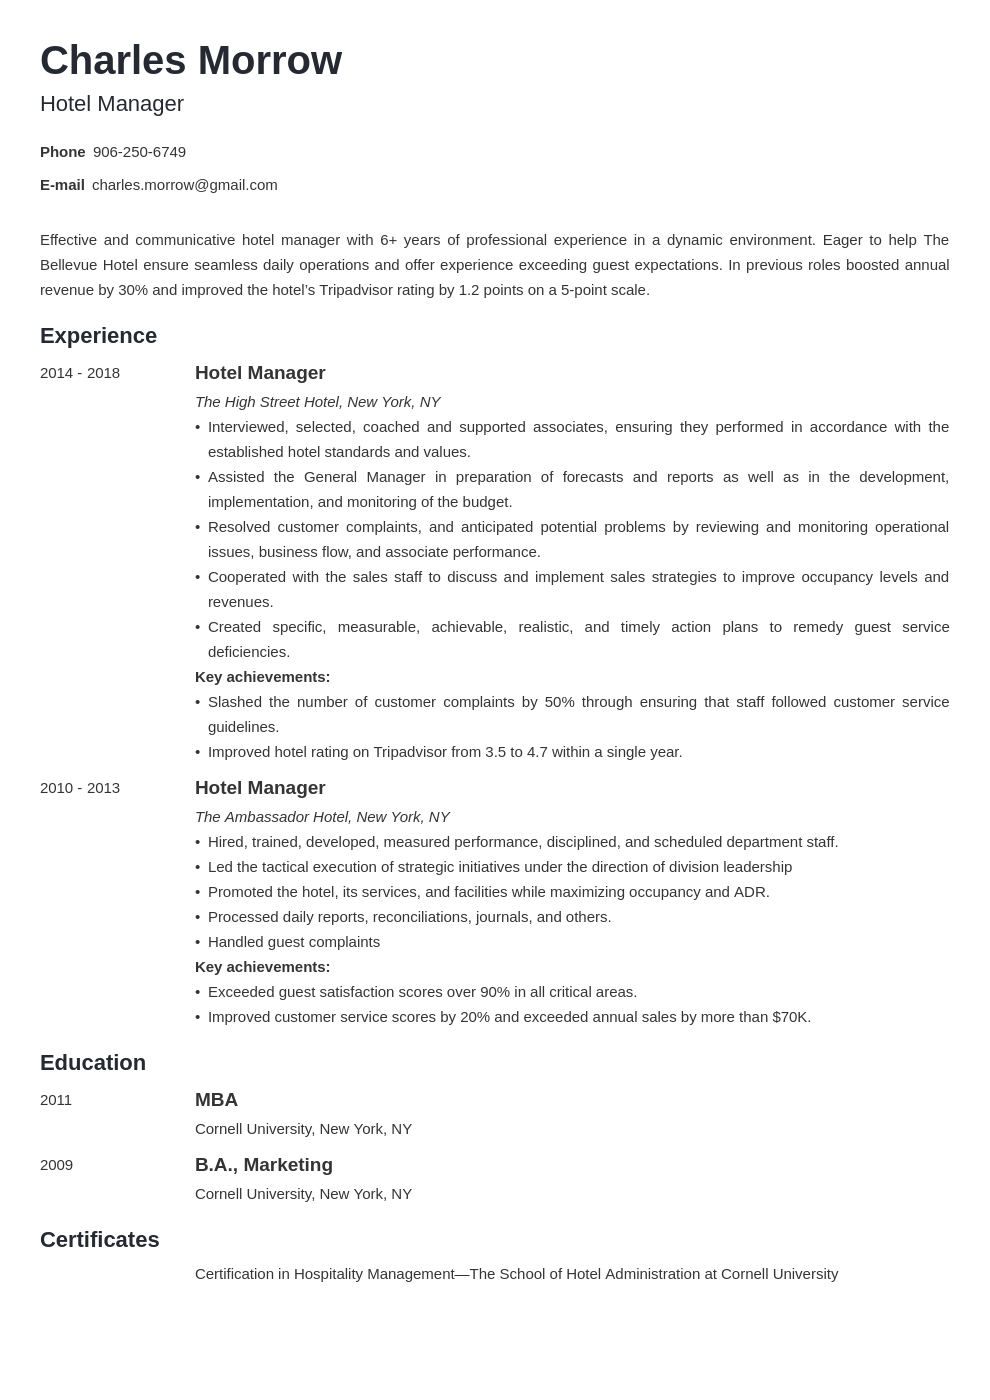 hotel manager resume example template minimo